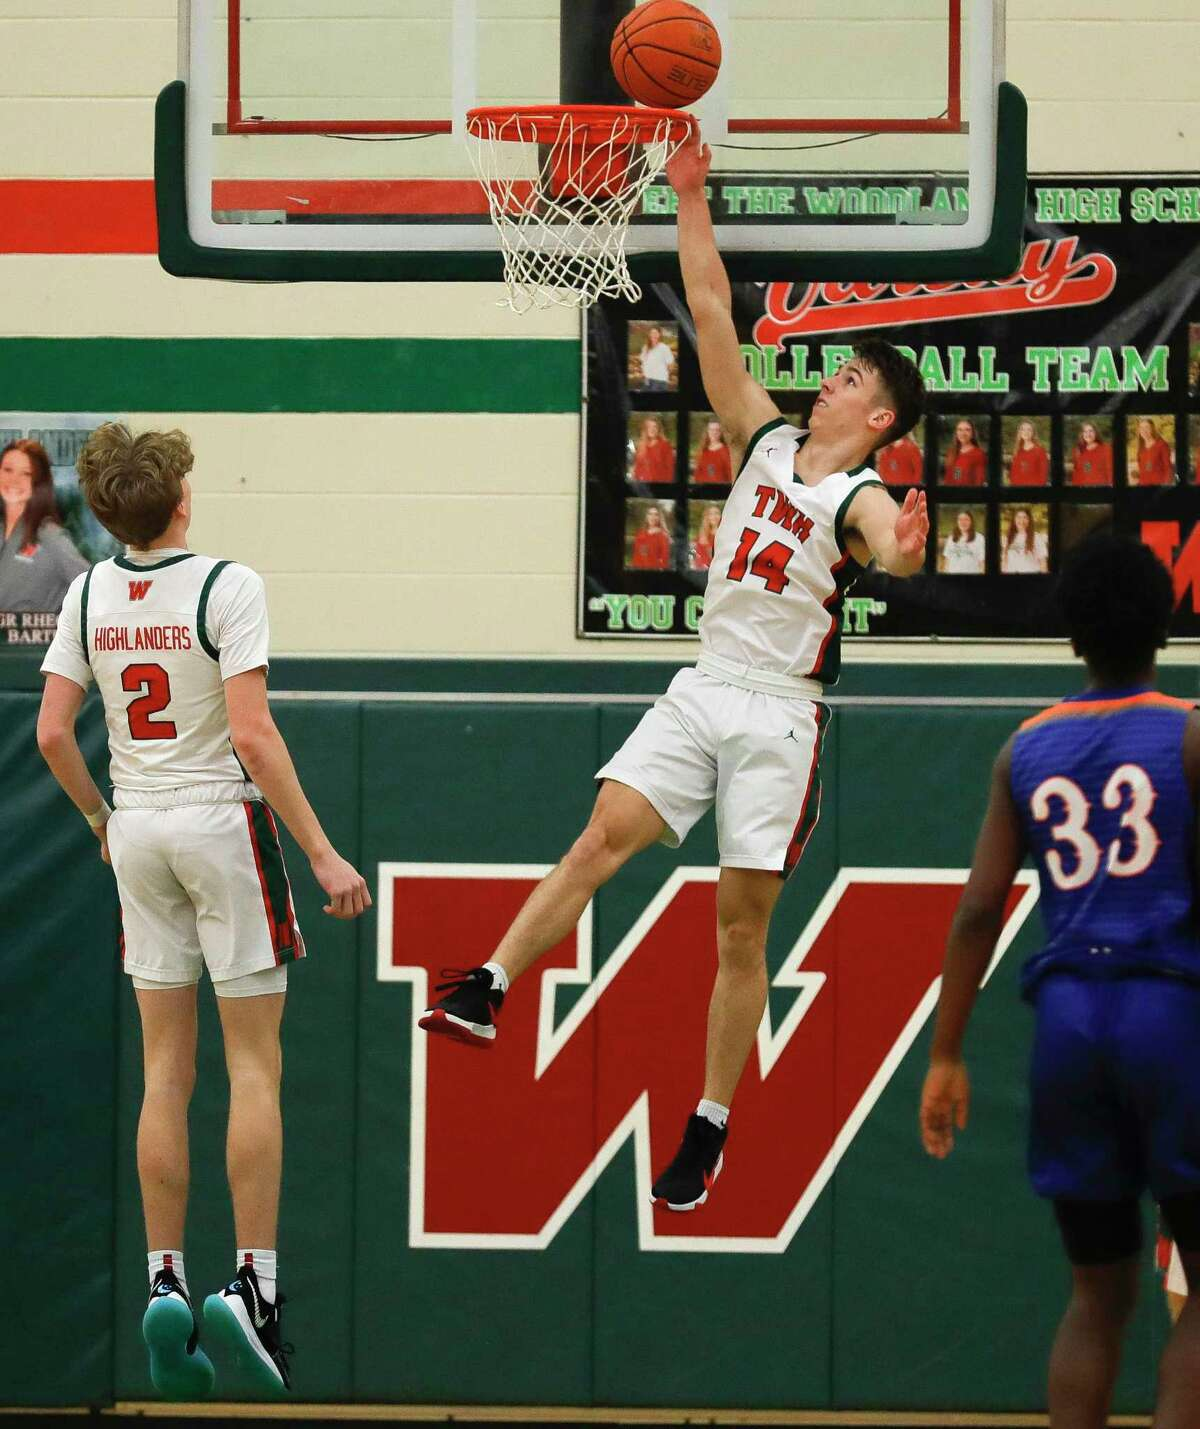 The Woodlands guard Isaiah Brown (14) makes a basket during the first quarter of a District 13-6A high school basketball game at The Woodlands High School, Thursday, Dec. 31, 2020, in The Woodlands.